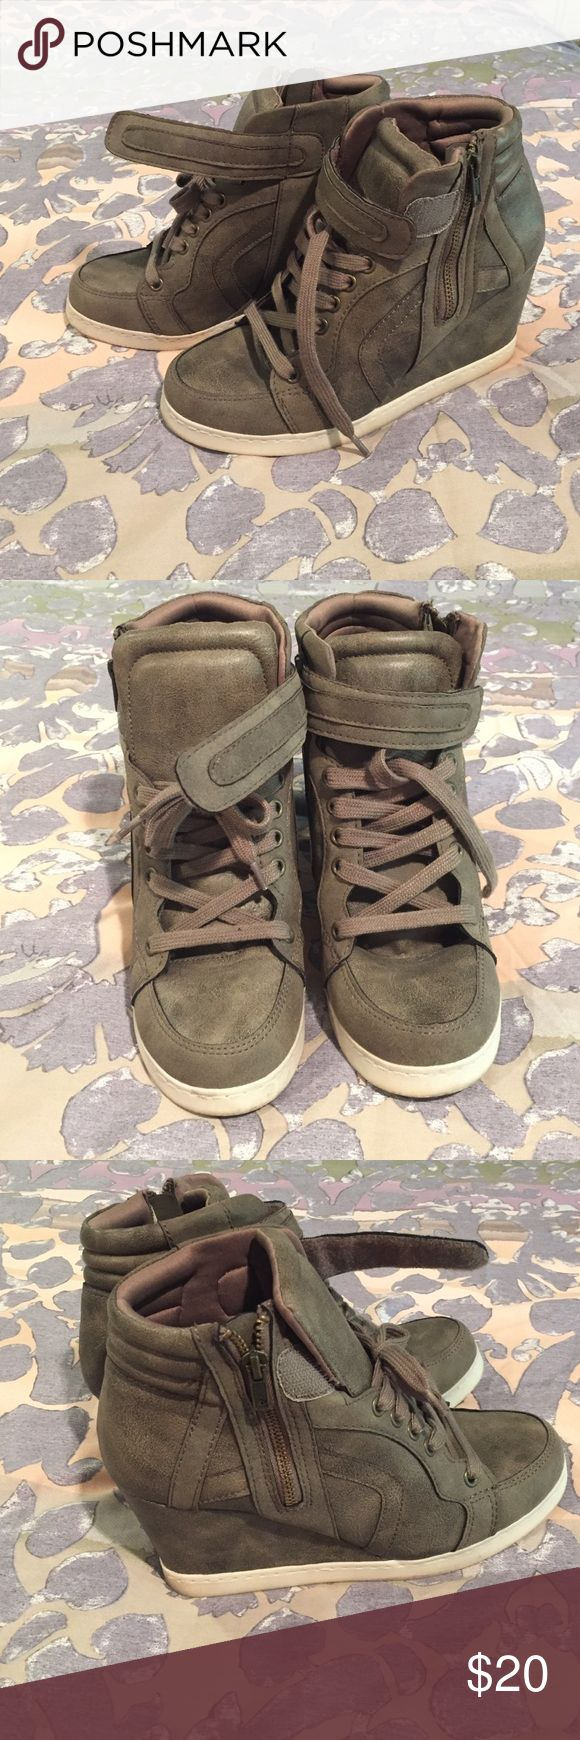 Candie's wedge tennis shoes Rustic gray color with shoe laces and Velcro up top. Zipper on the outer side of each shoe. Worn twice Candie's Shoes Sneakers